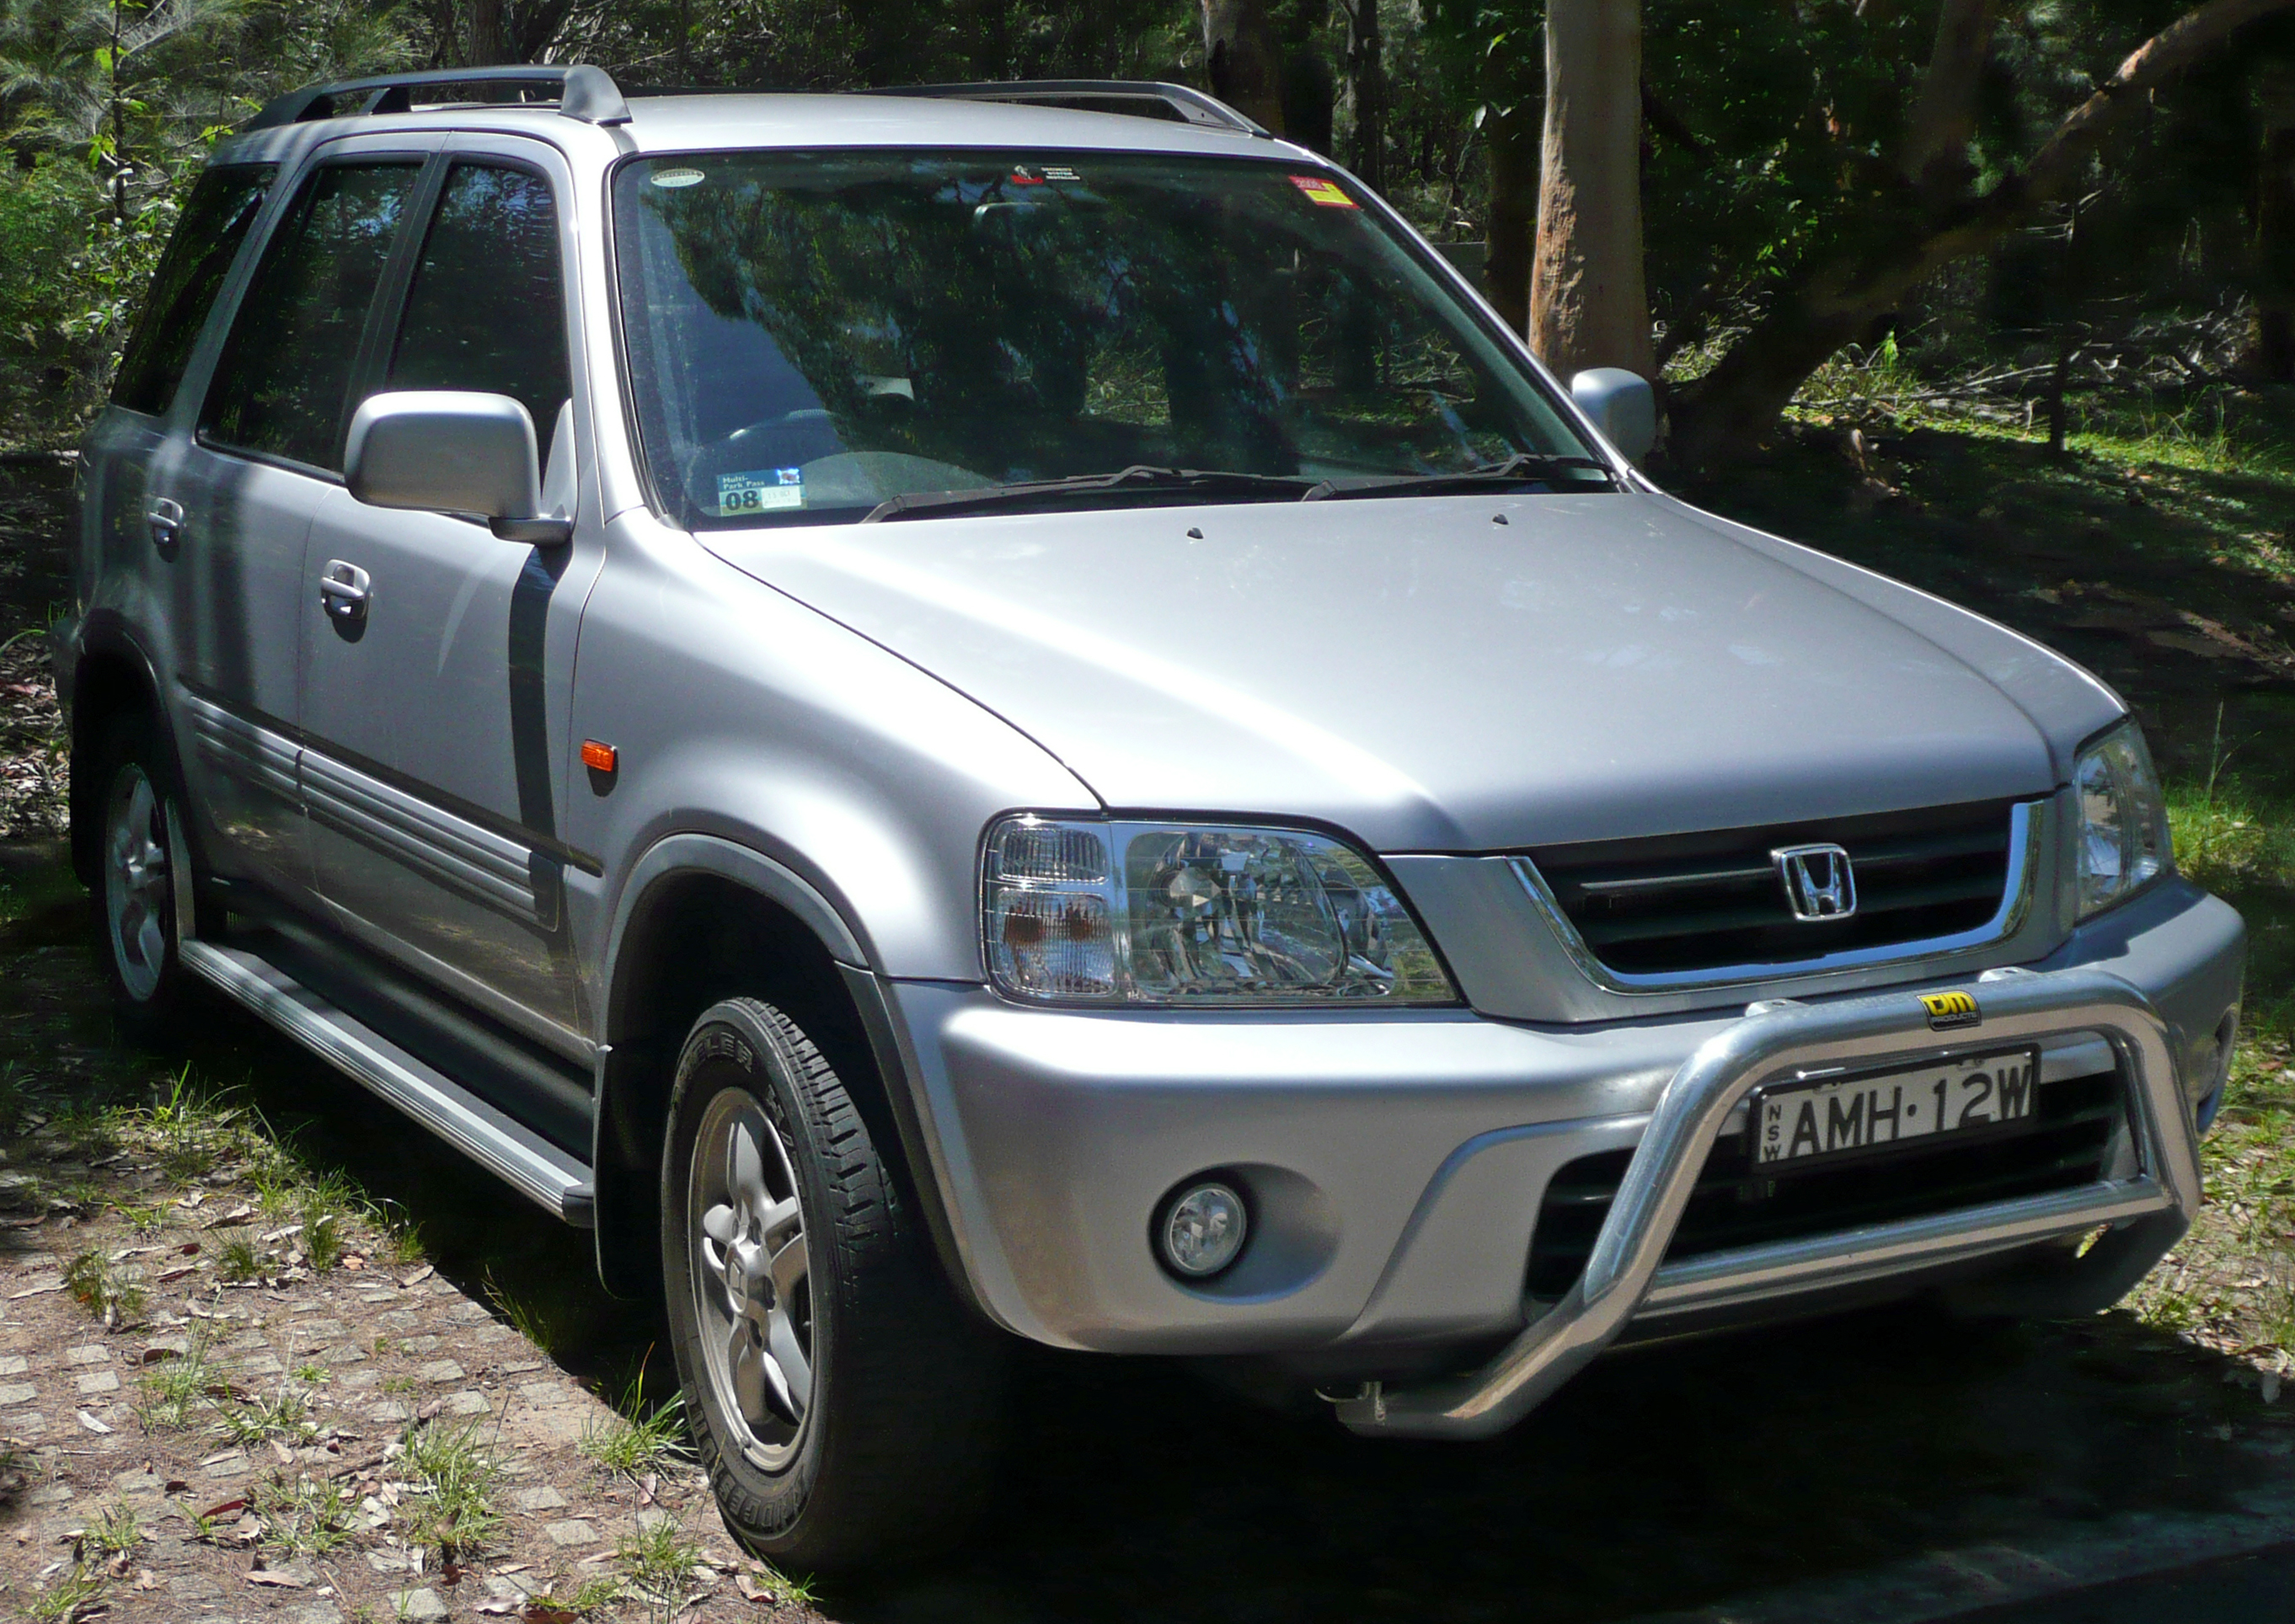 New Honda Crv >> File:1999-2001 Honda CR-V Sport wagon 02.jpg - Wikimedia Commons